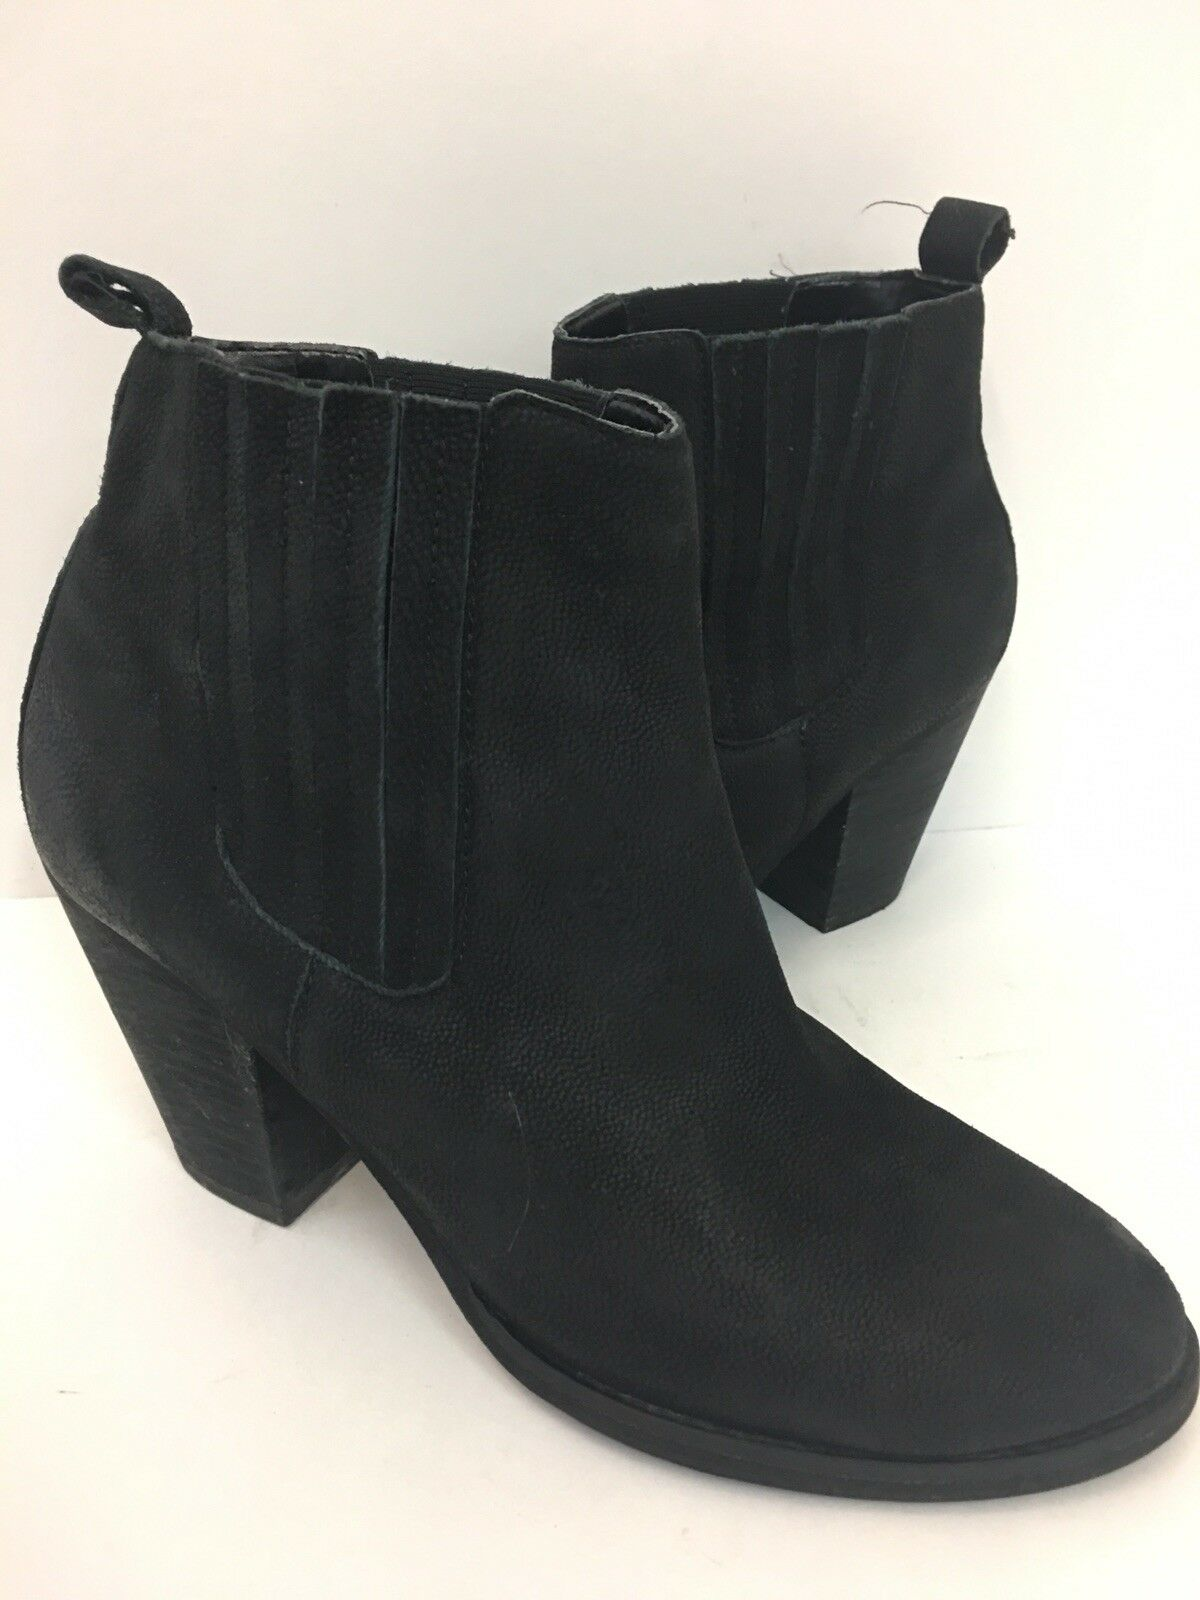 Abound Black Suede Leather Ankle Boots Booties Western Flare Heeled Size 8.5